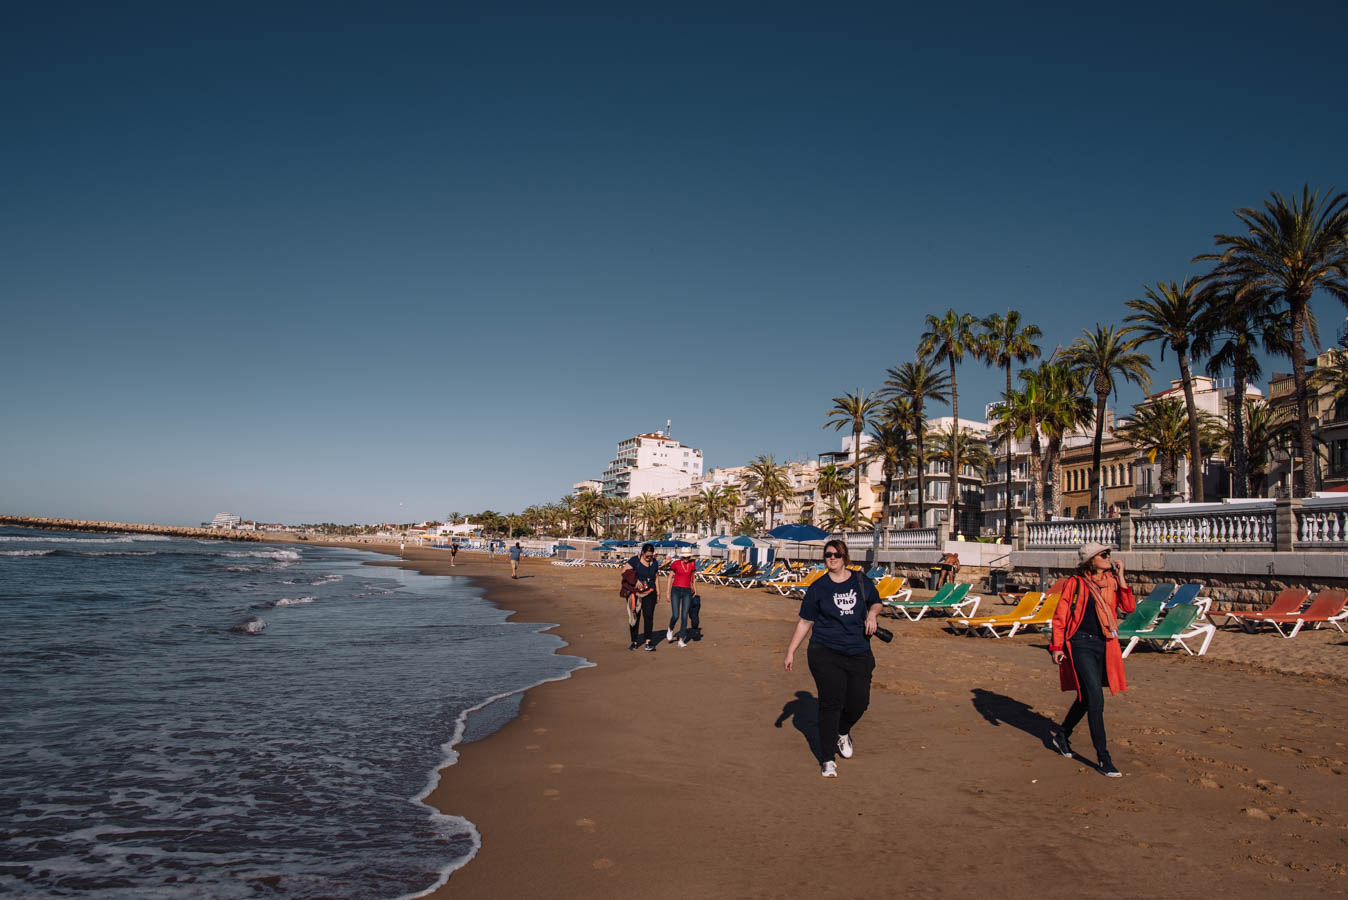 Sitges has some of the best beaches in Europe